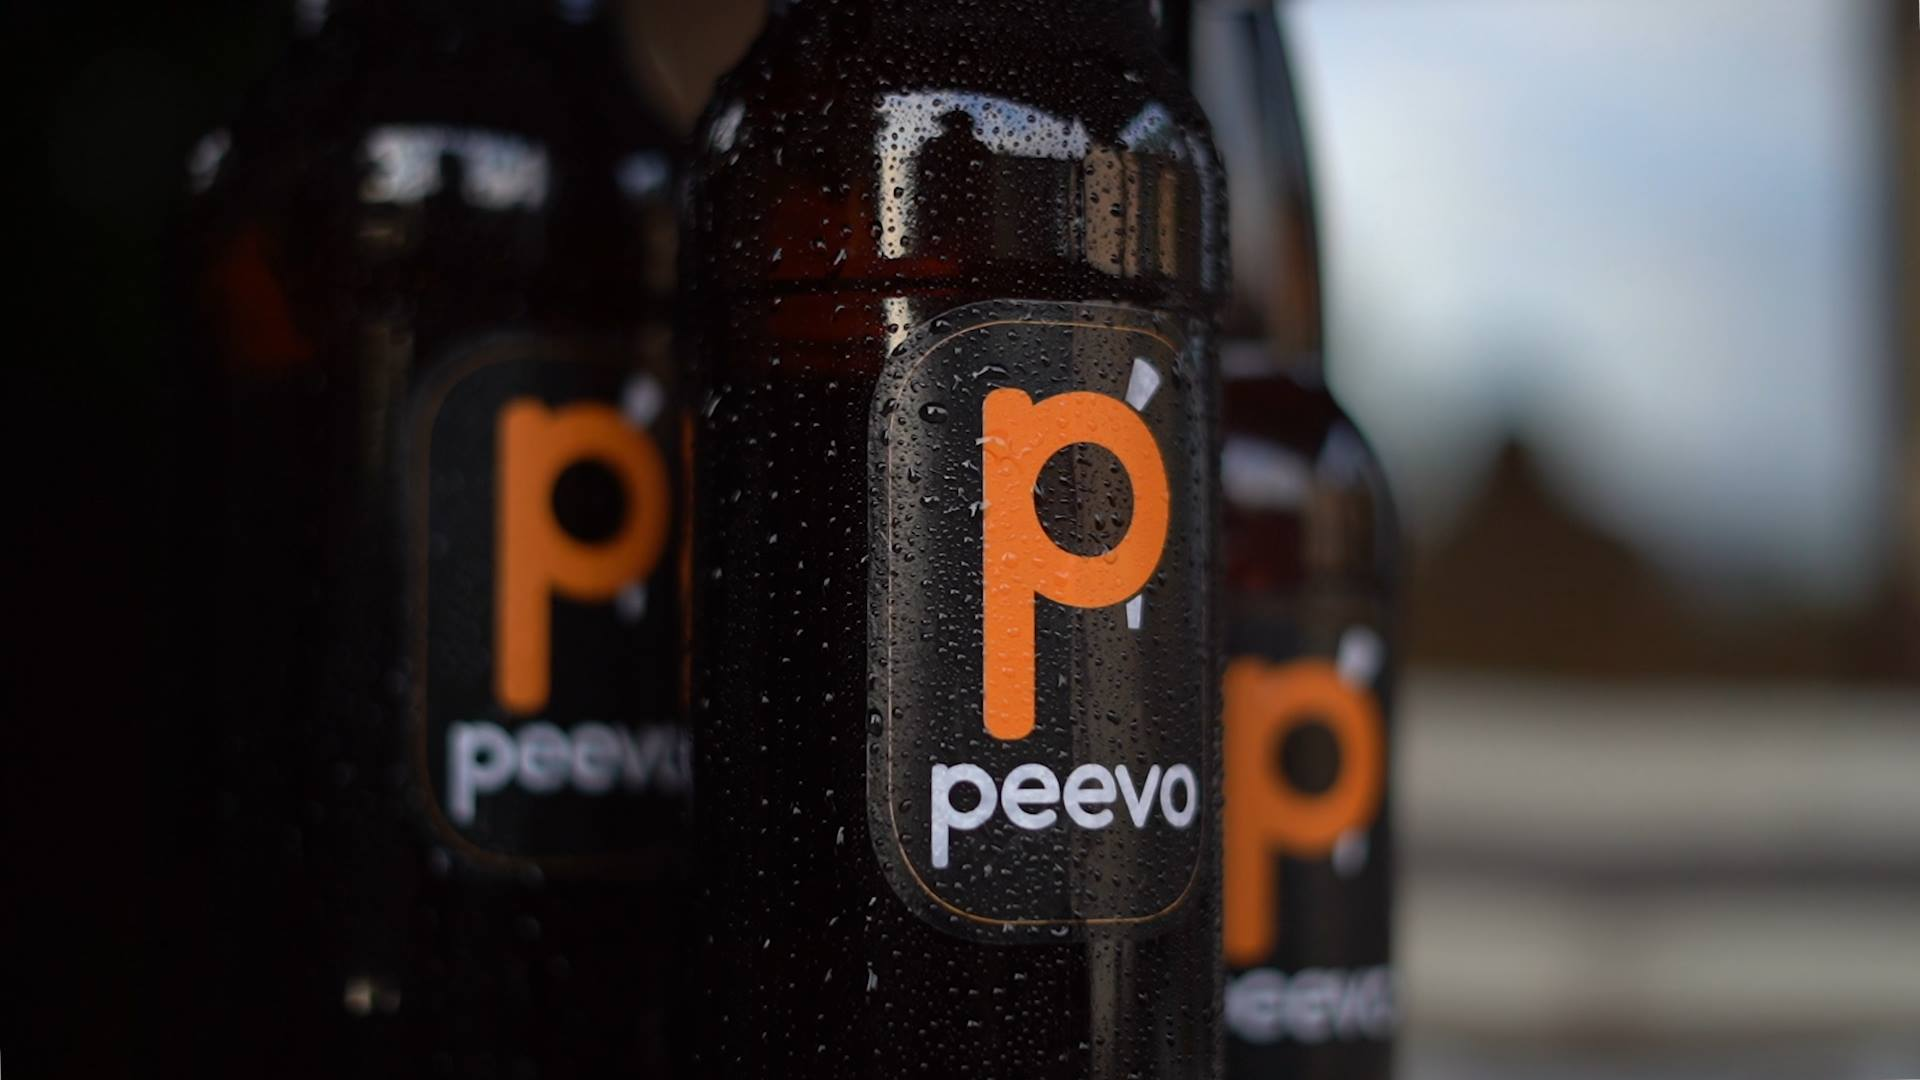 Prague's New Online Pub Sends Draft Beer Right to Your Door